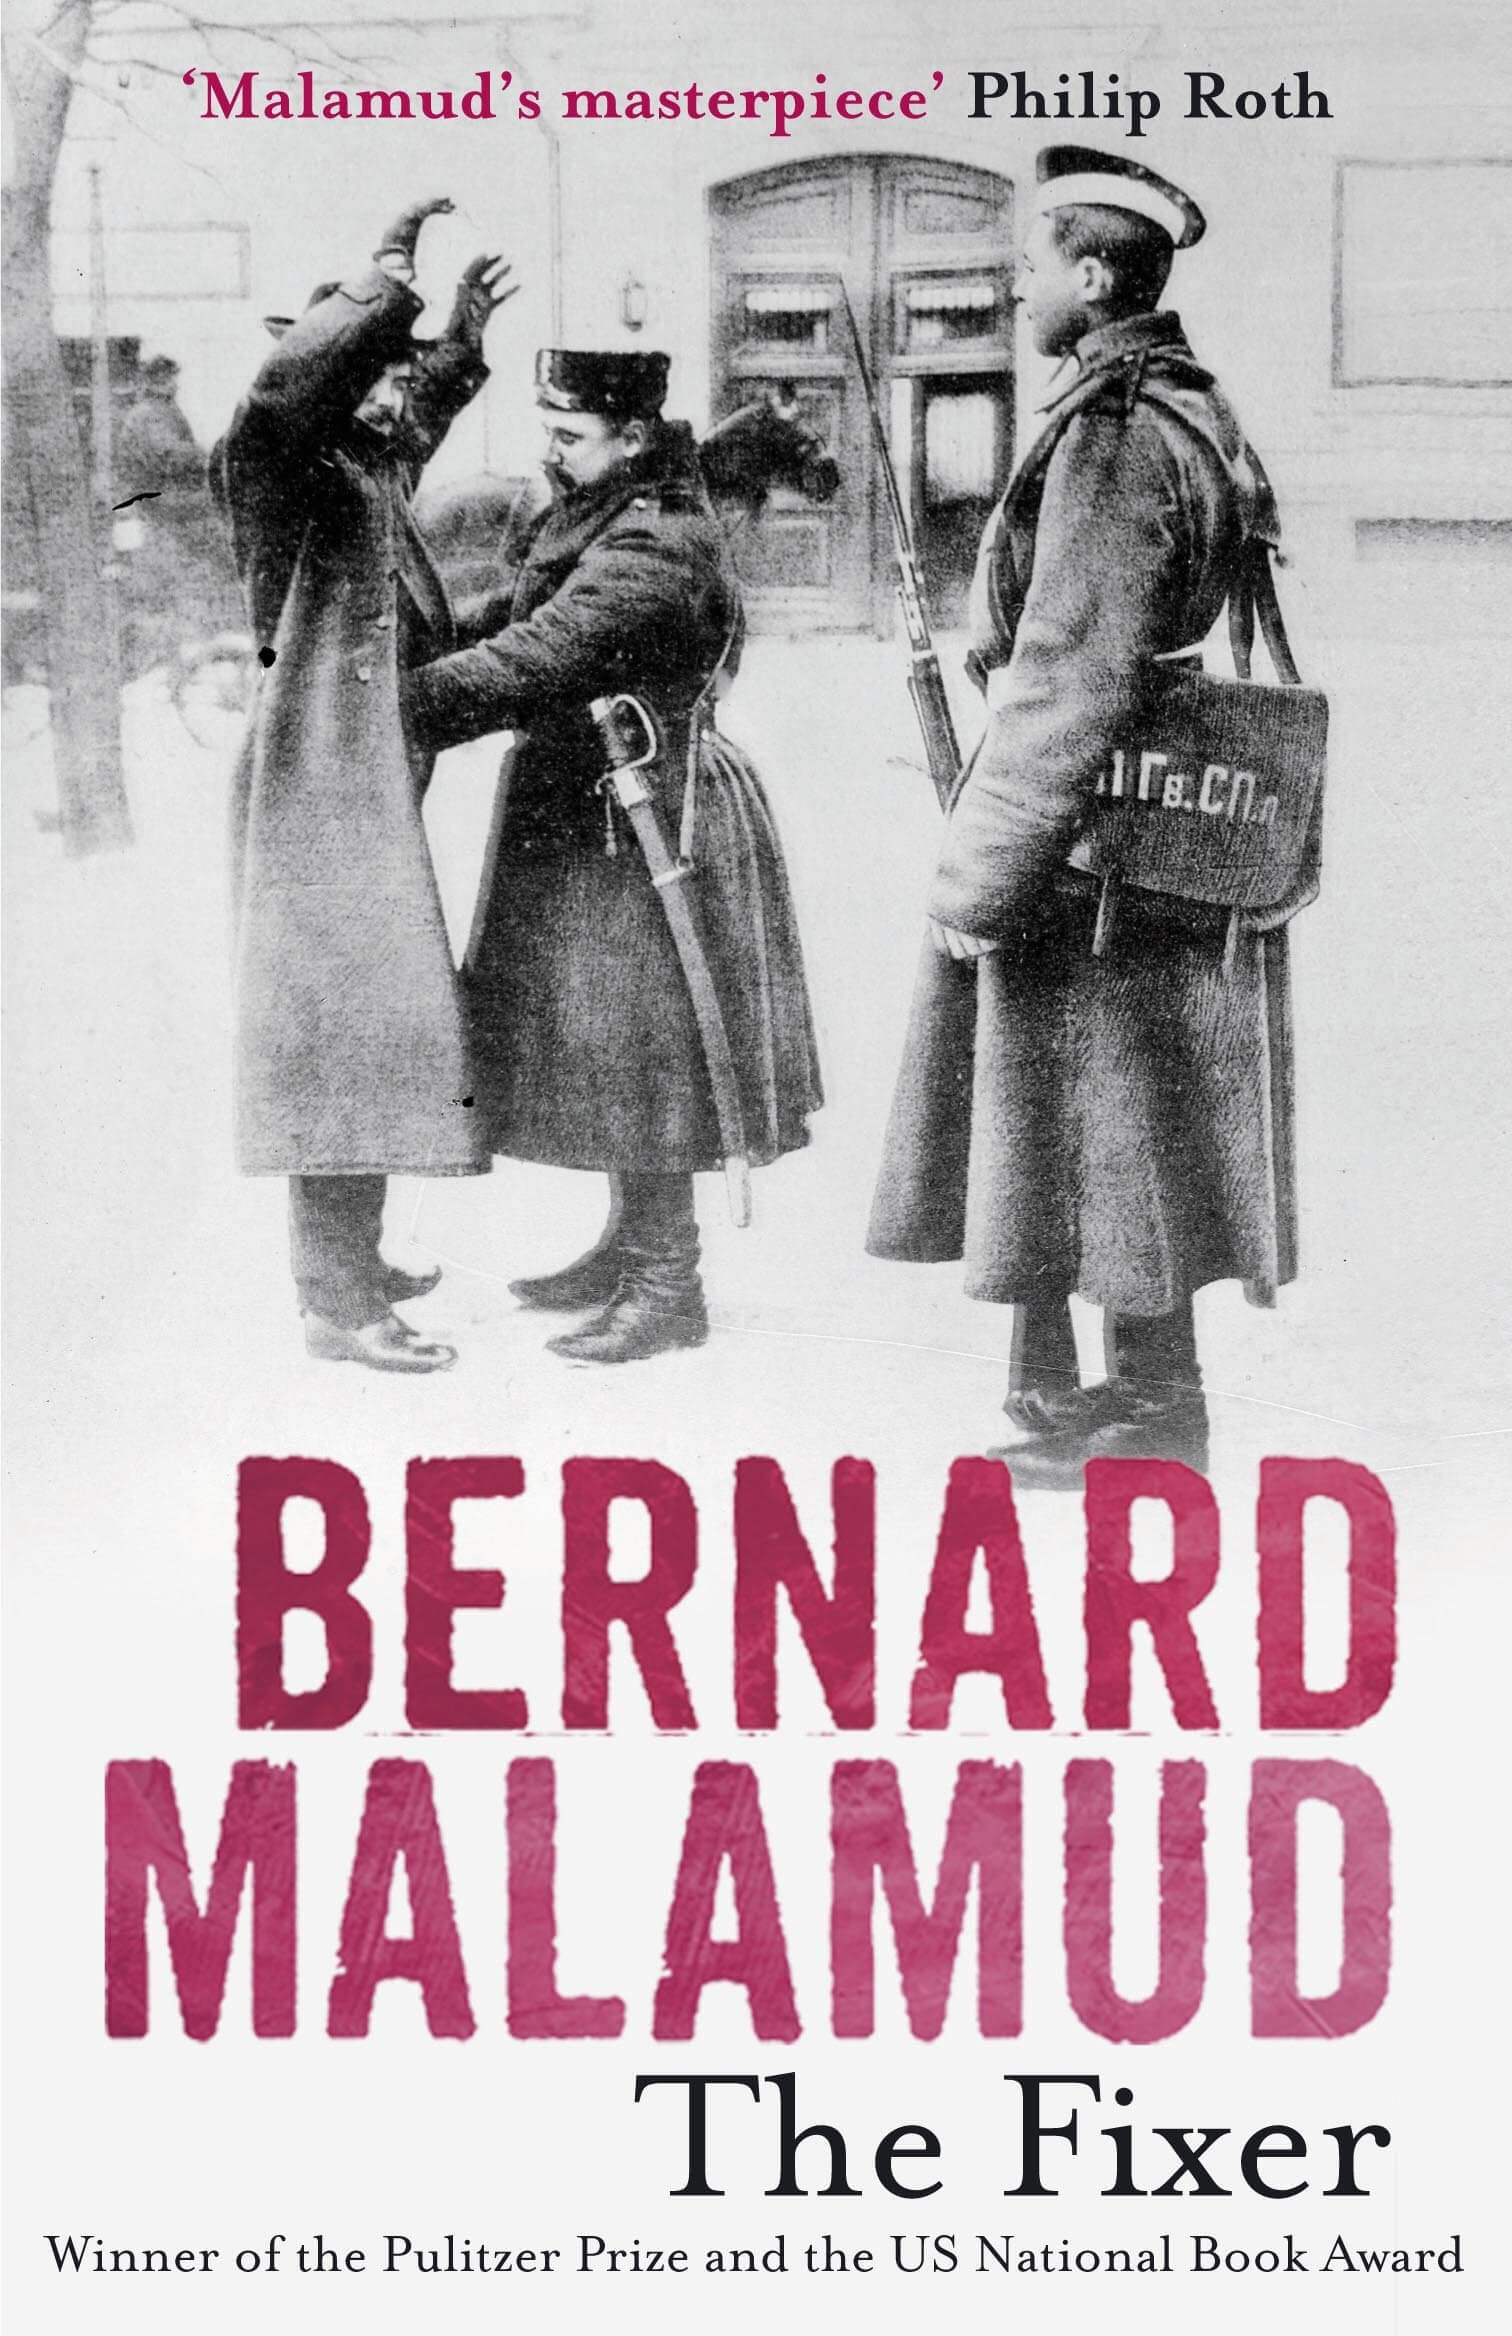 The Fixer by Bernard Malamud